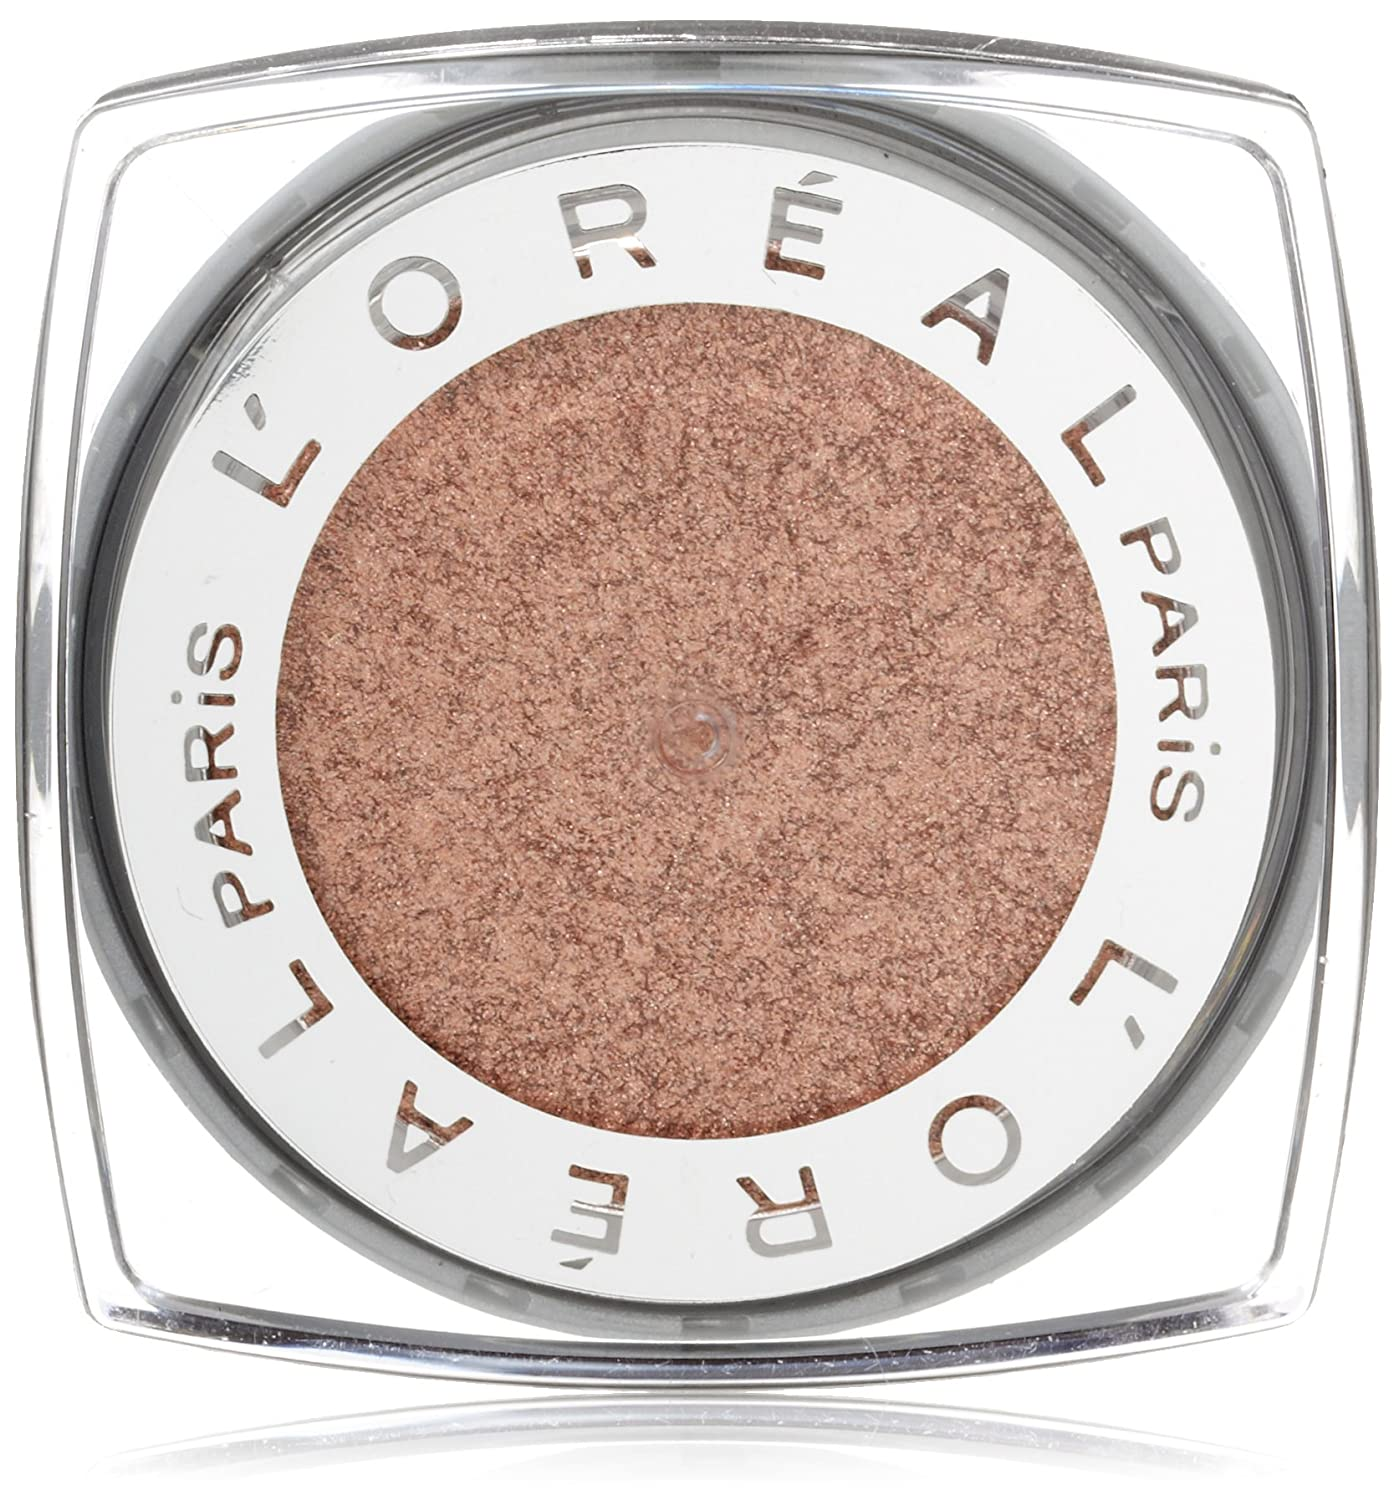 L'oréal Paris Makeup Infallible 24 Hr Shadow, Luxurious Powder Cream Eyeshadow, High Pigment Color, Velvety Formula, Creamy Texture,... by L'oreal Paris